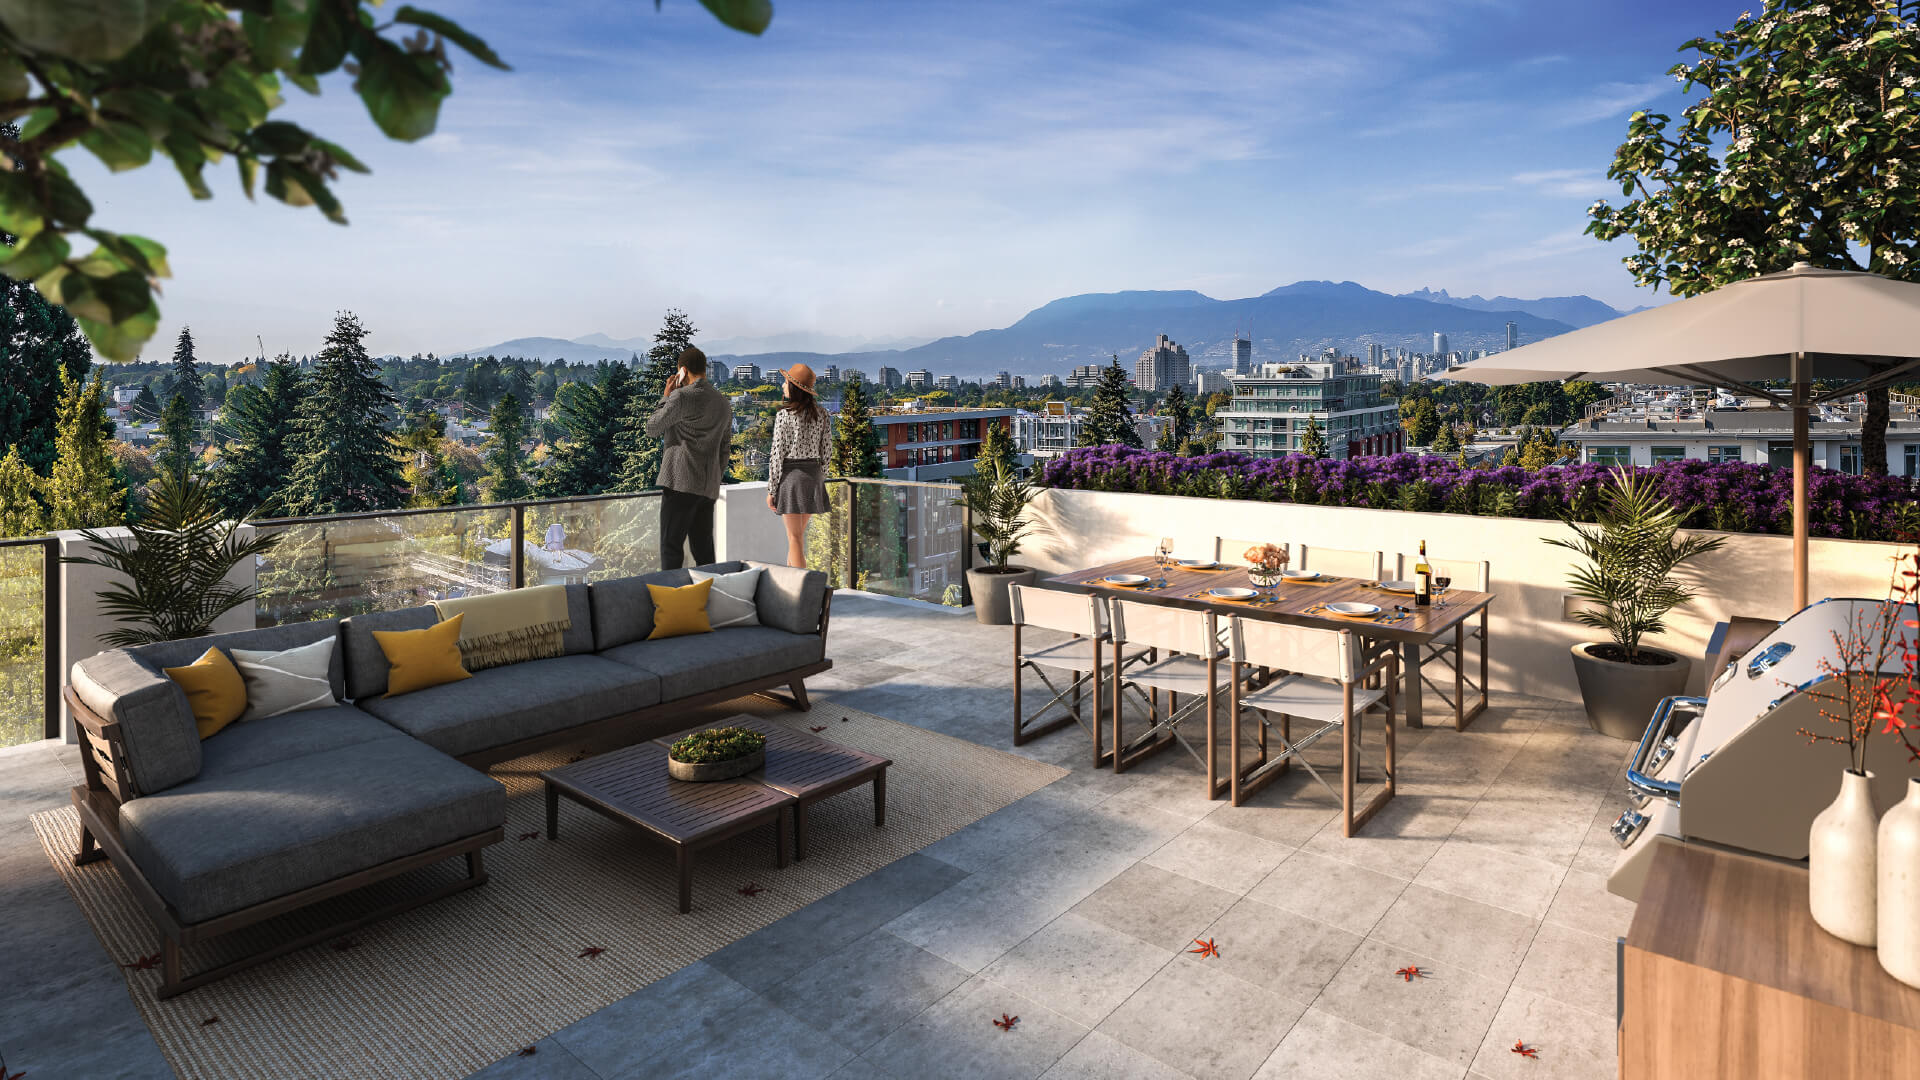 ELEVATED AMENITIES FOR A LUXURIOUS LIFE